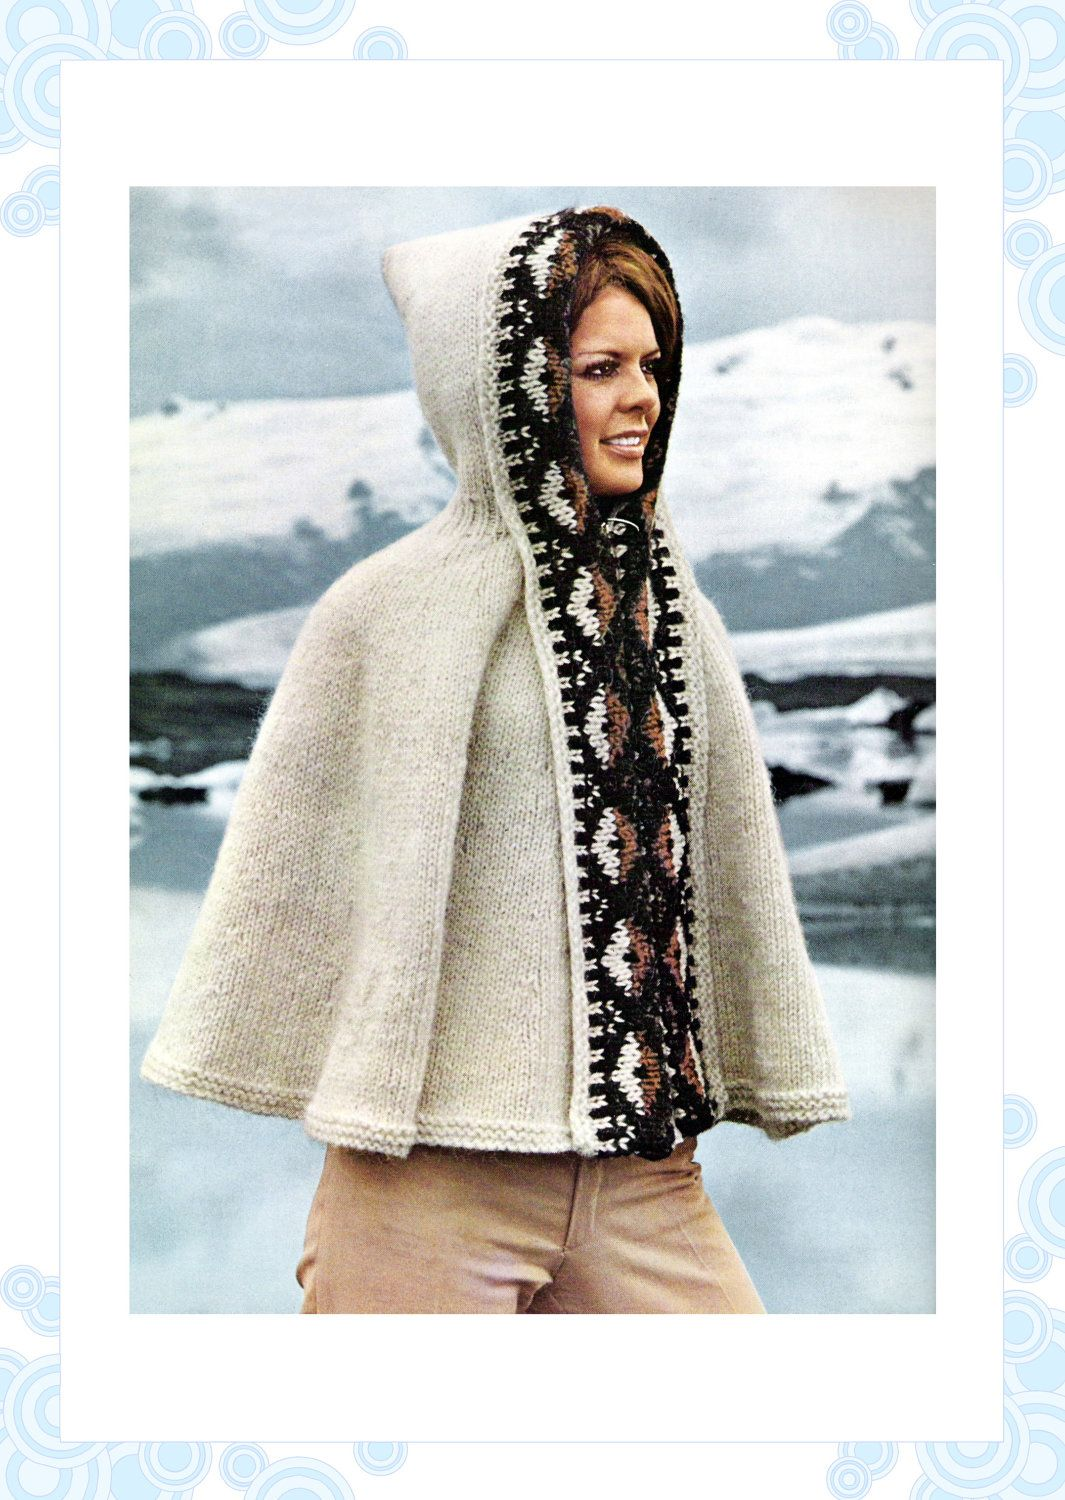 Vintage knitting pattern icelandic hooded poncho cape 60s vintage knitting pattern icelandic hooded poncho cape 60s pdf knitting pattern bankloansurffo Image collections